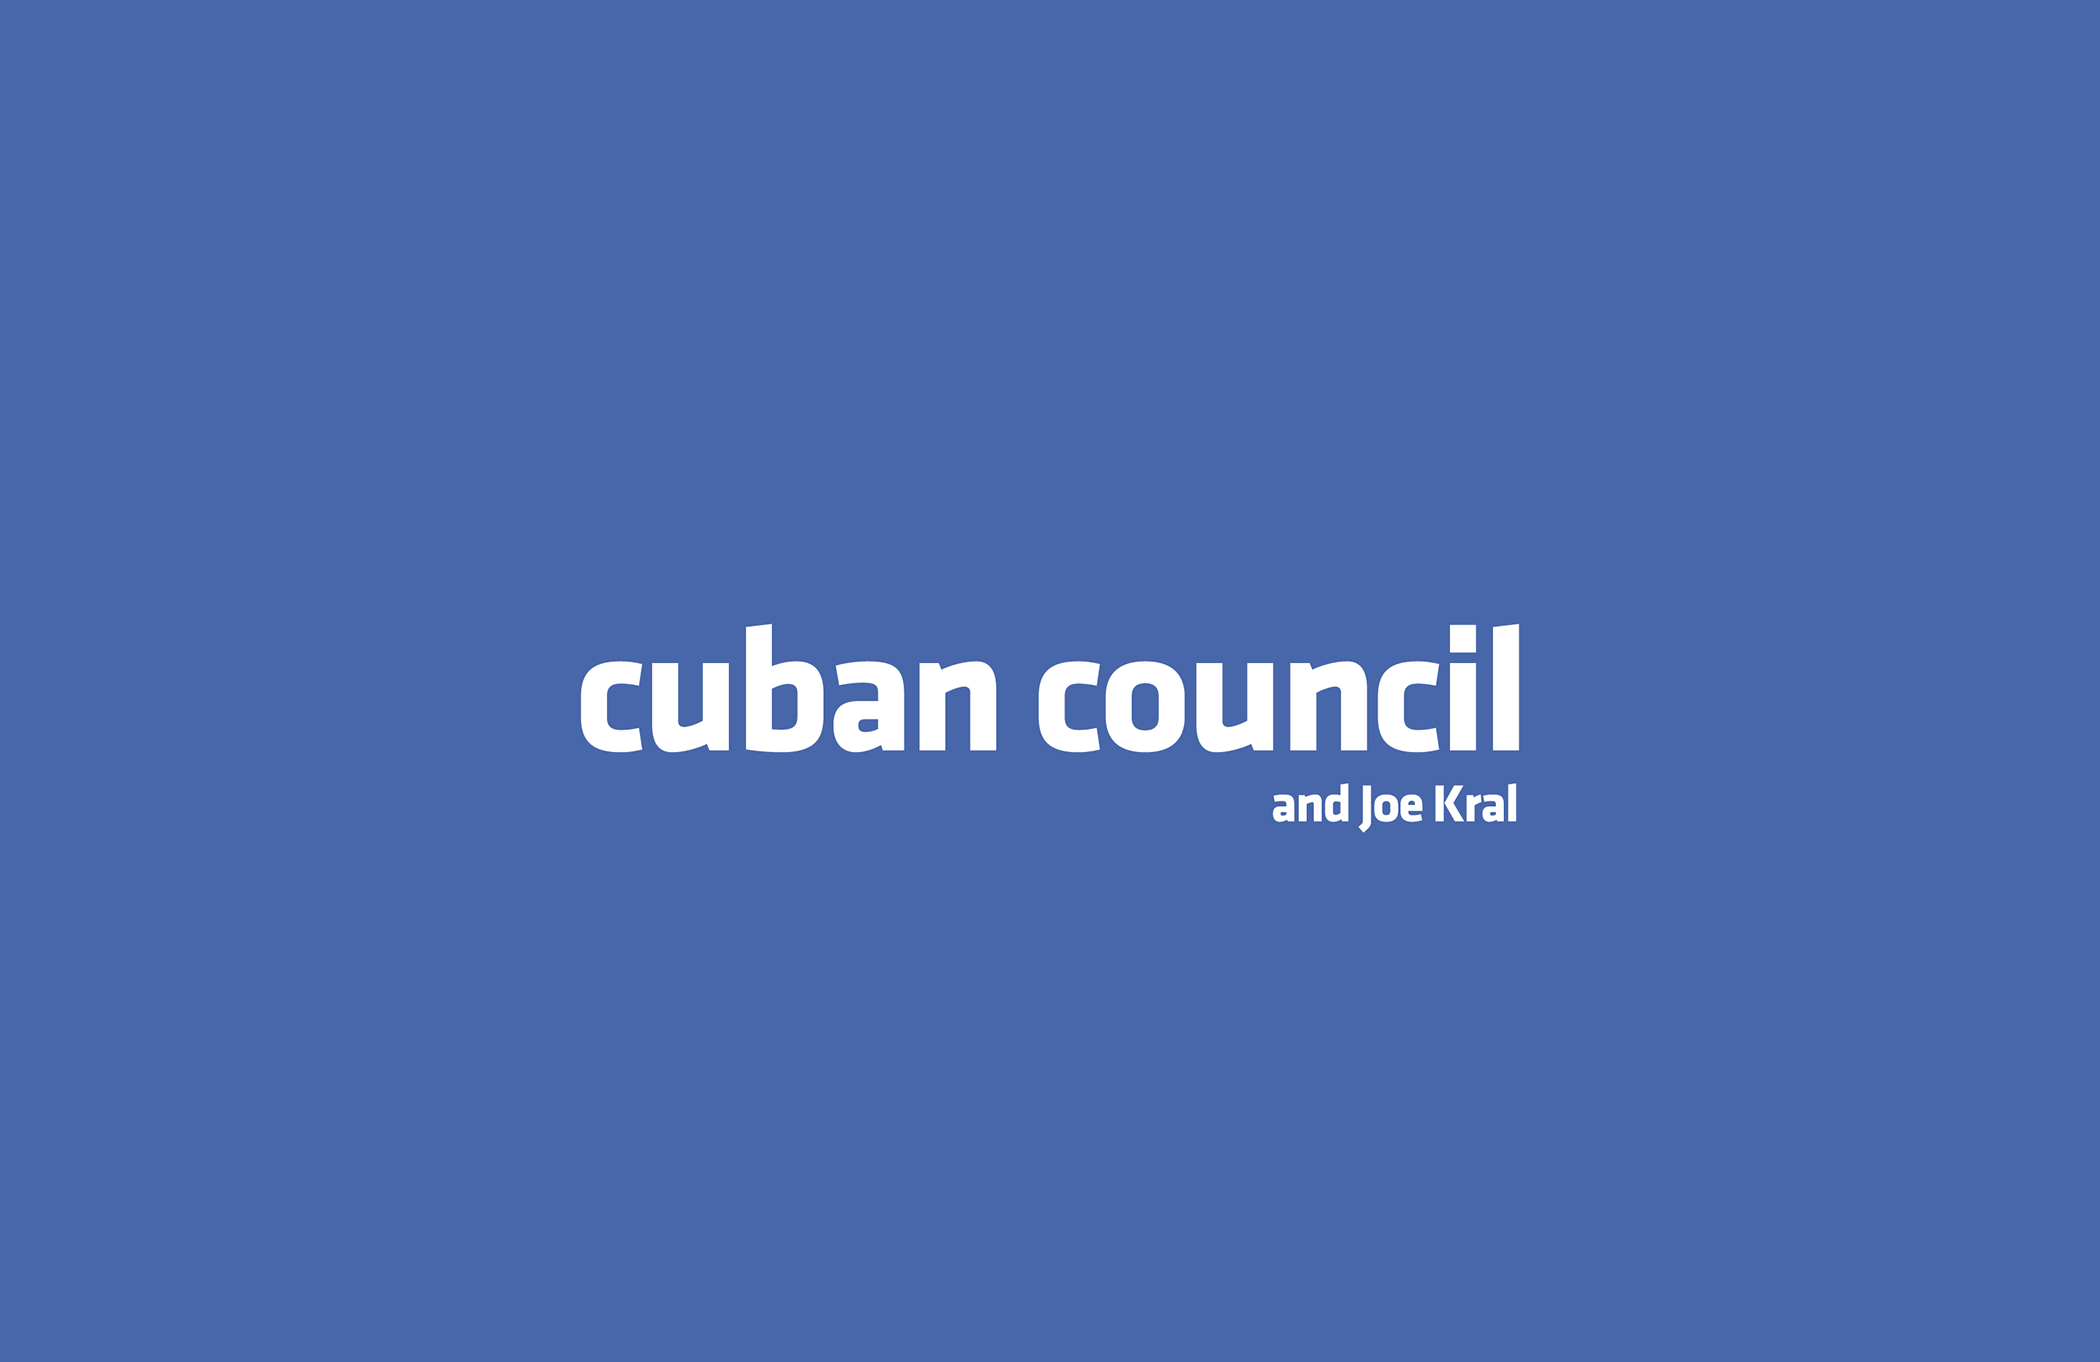 Cuban Council & Joe Kral - Designers of the Facebook logo